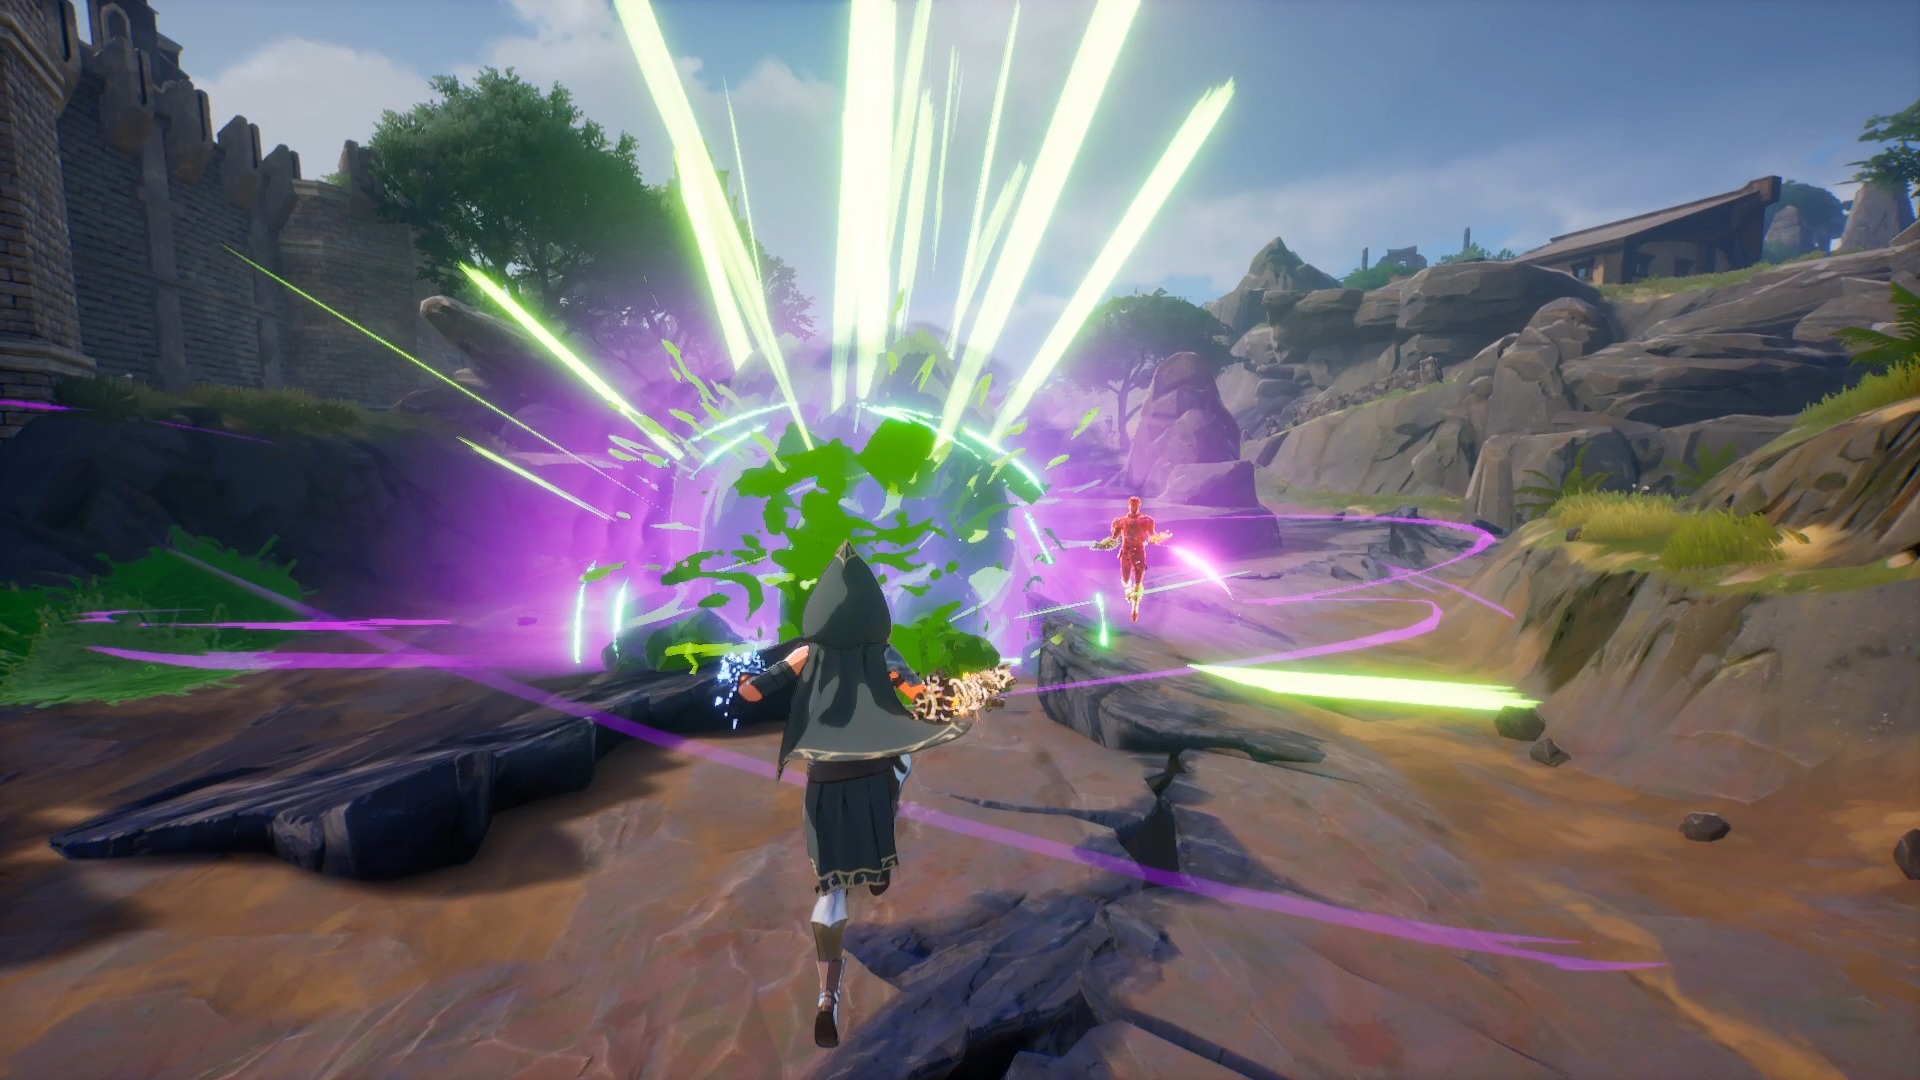 Anime wizard battle royale Spellbreak will be free to play at launch | PCGamesN